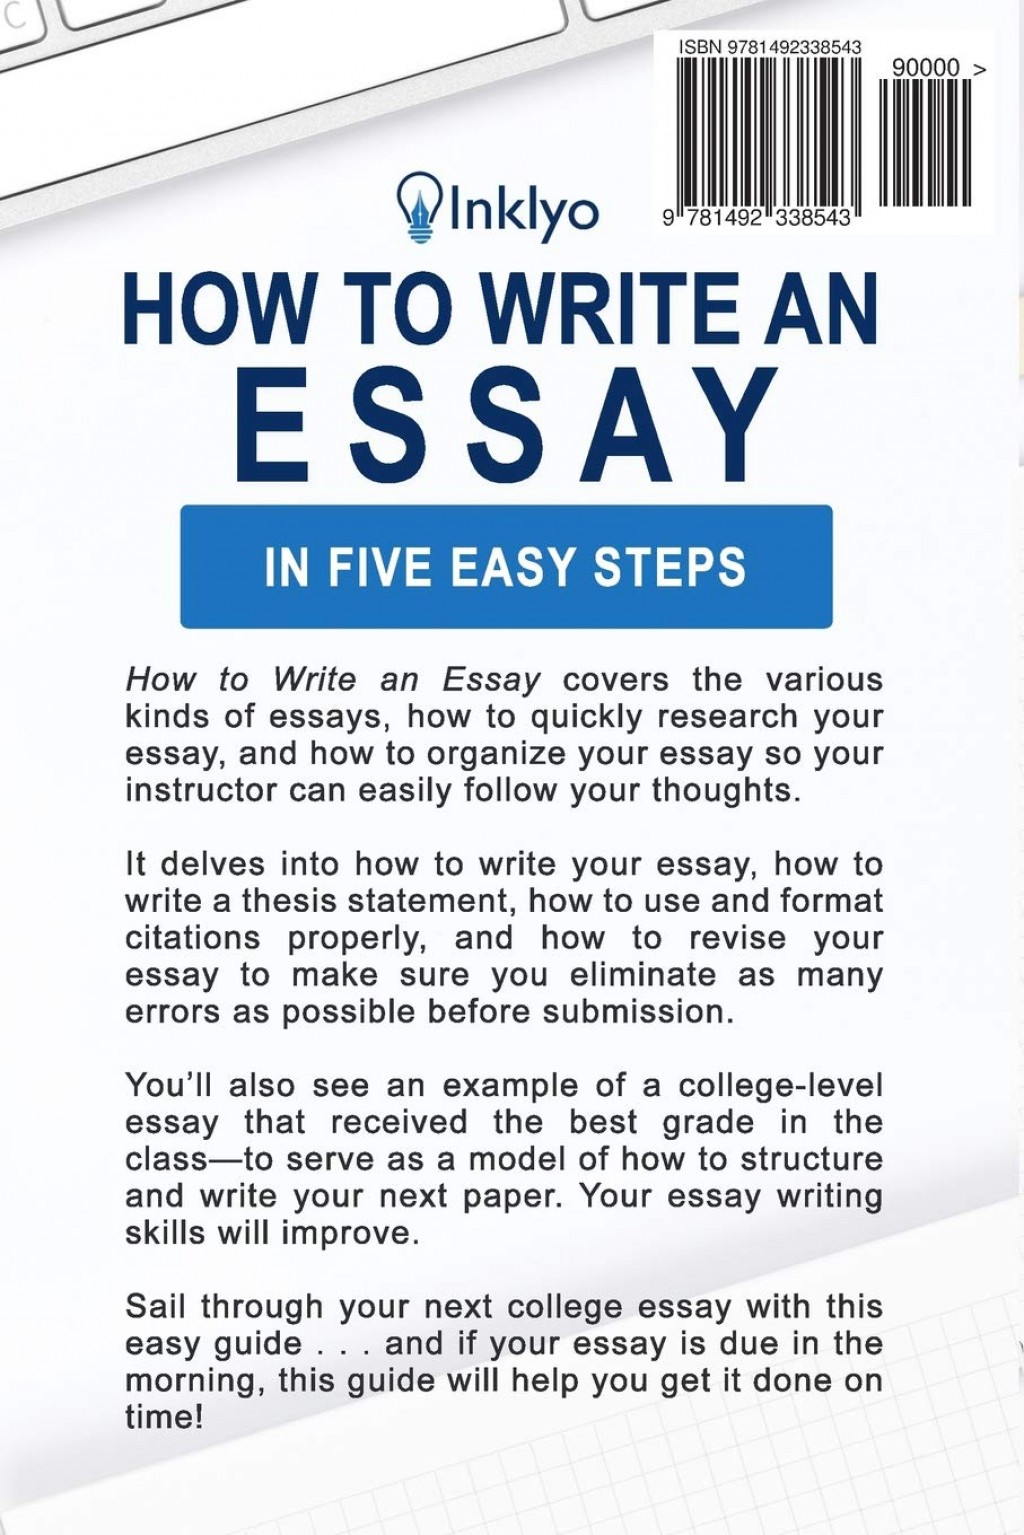 001 Essay Example Writing Breathtaking App Topics For High School Students Apk Large